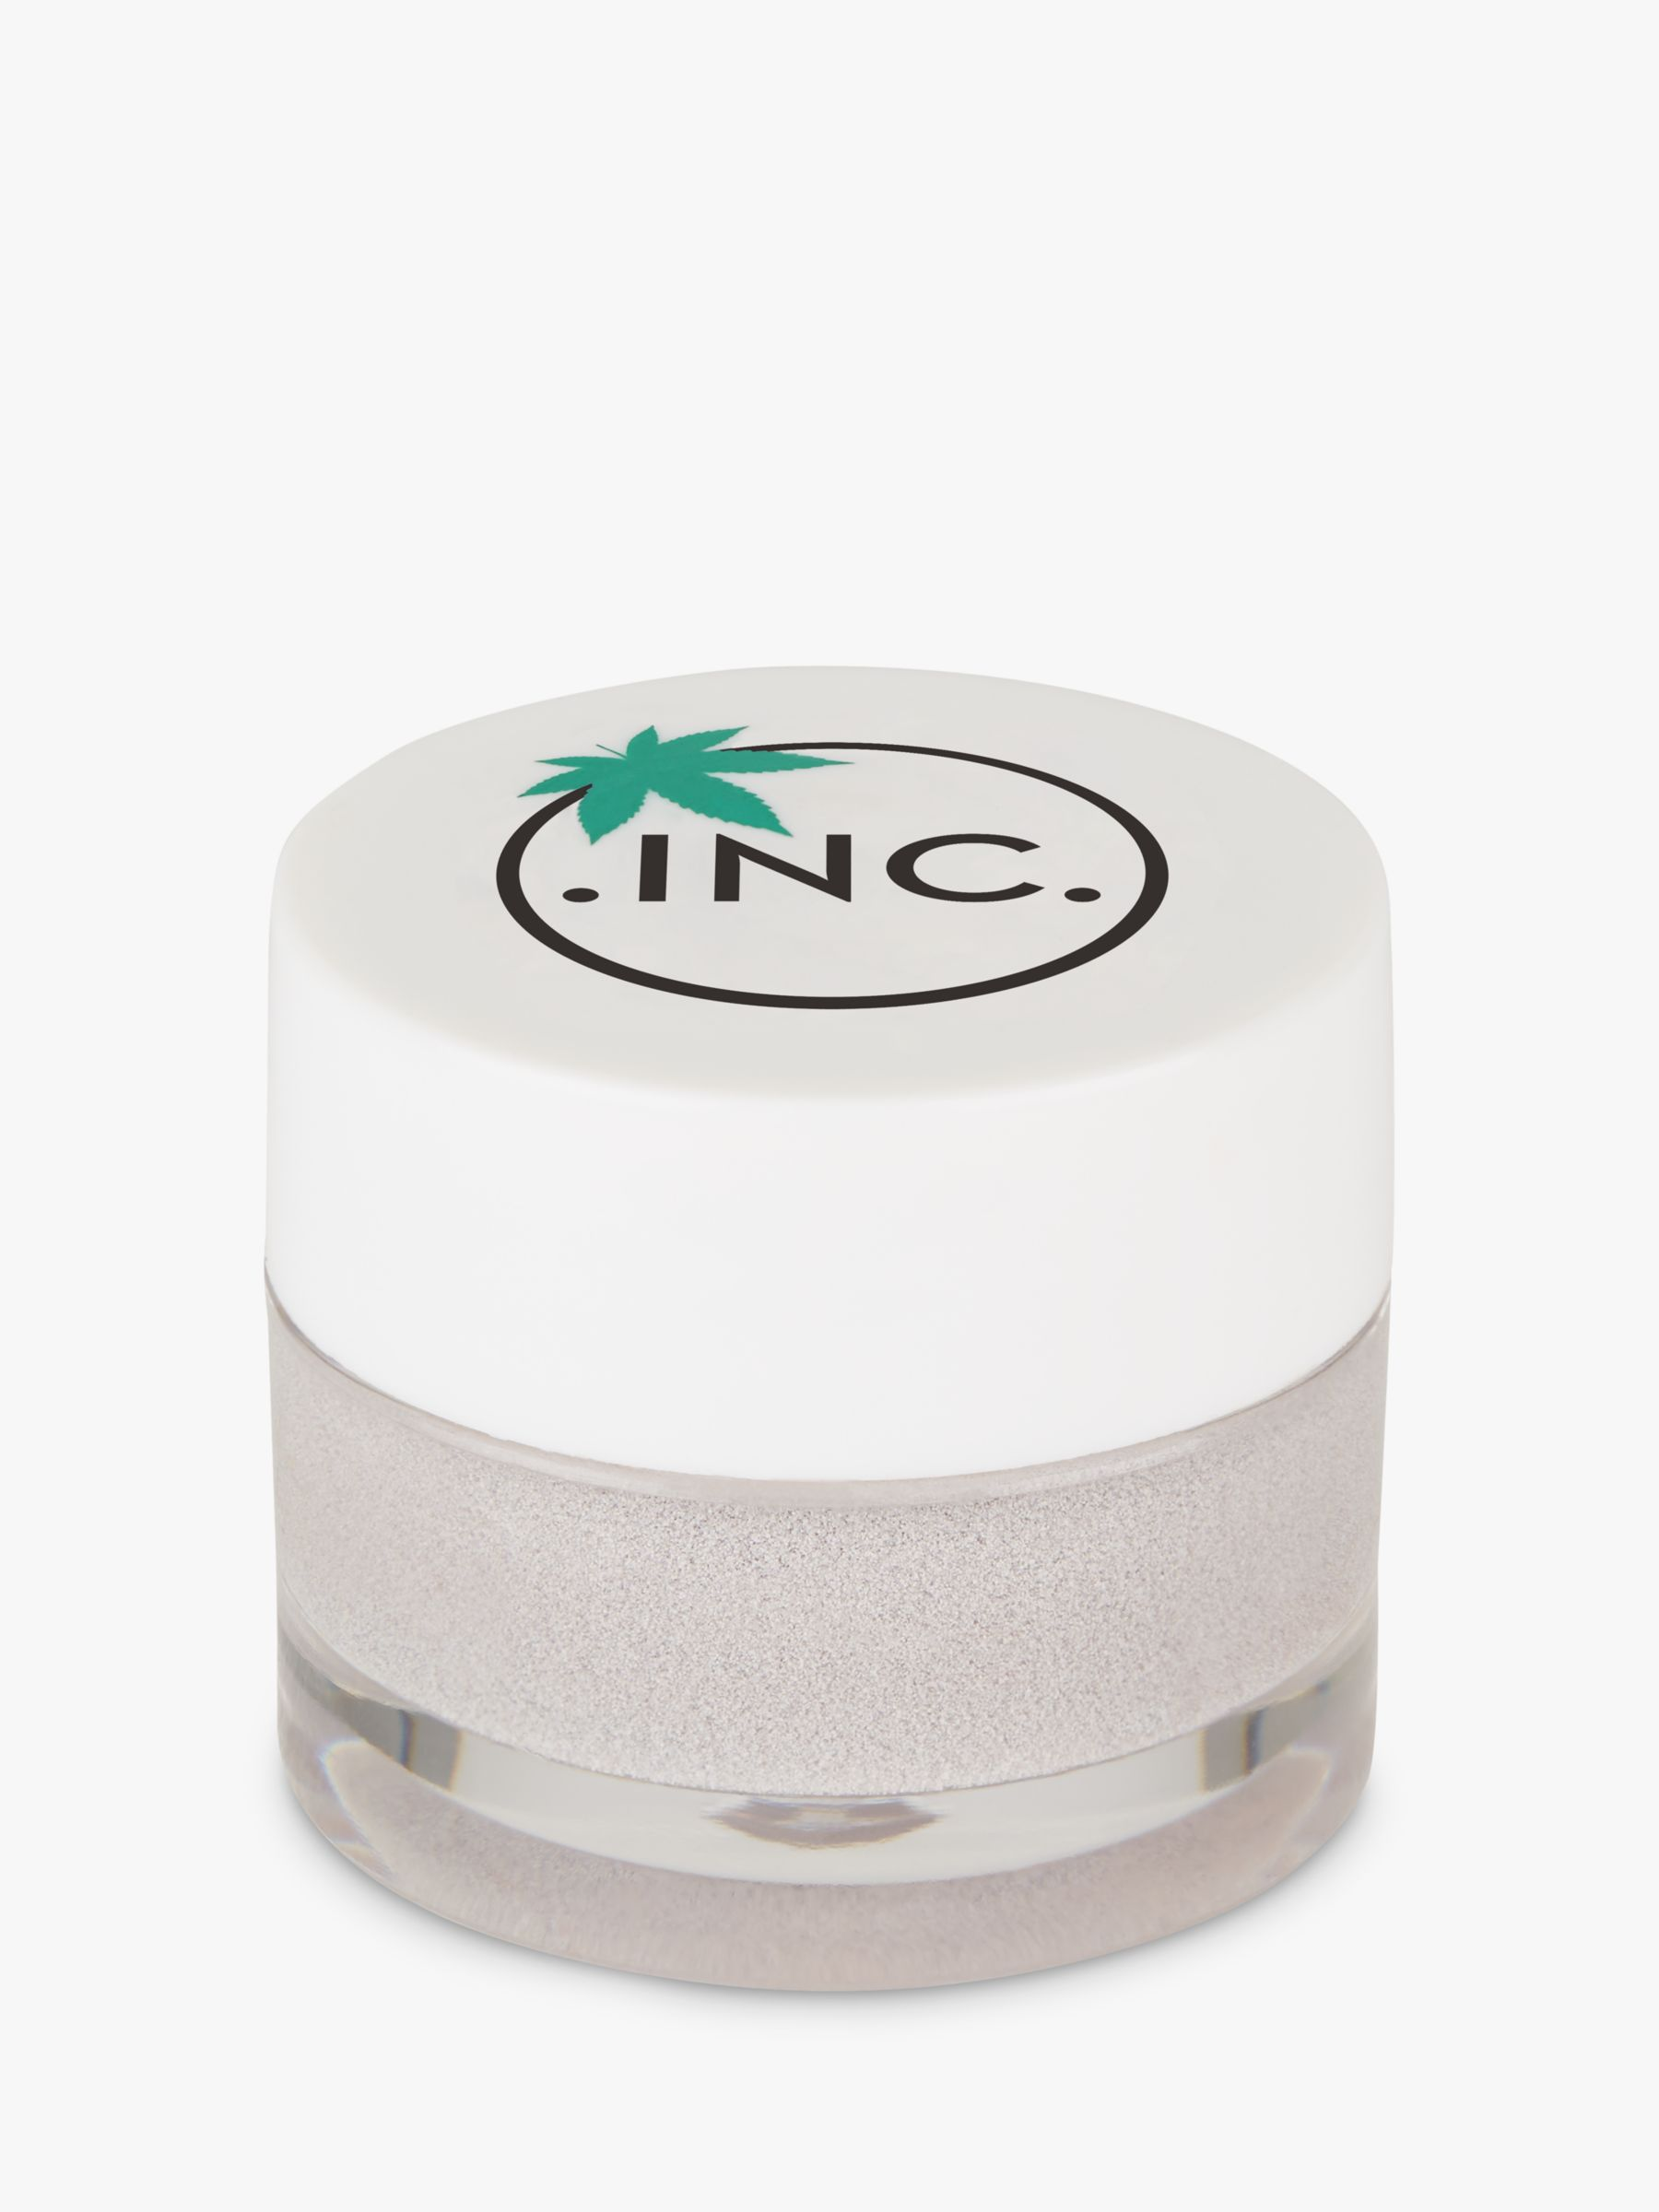 Nails Inc Nails Inc Hemp Lip Scrub, 7g